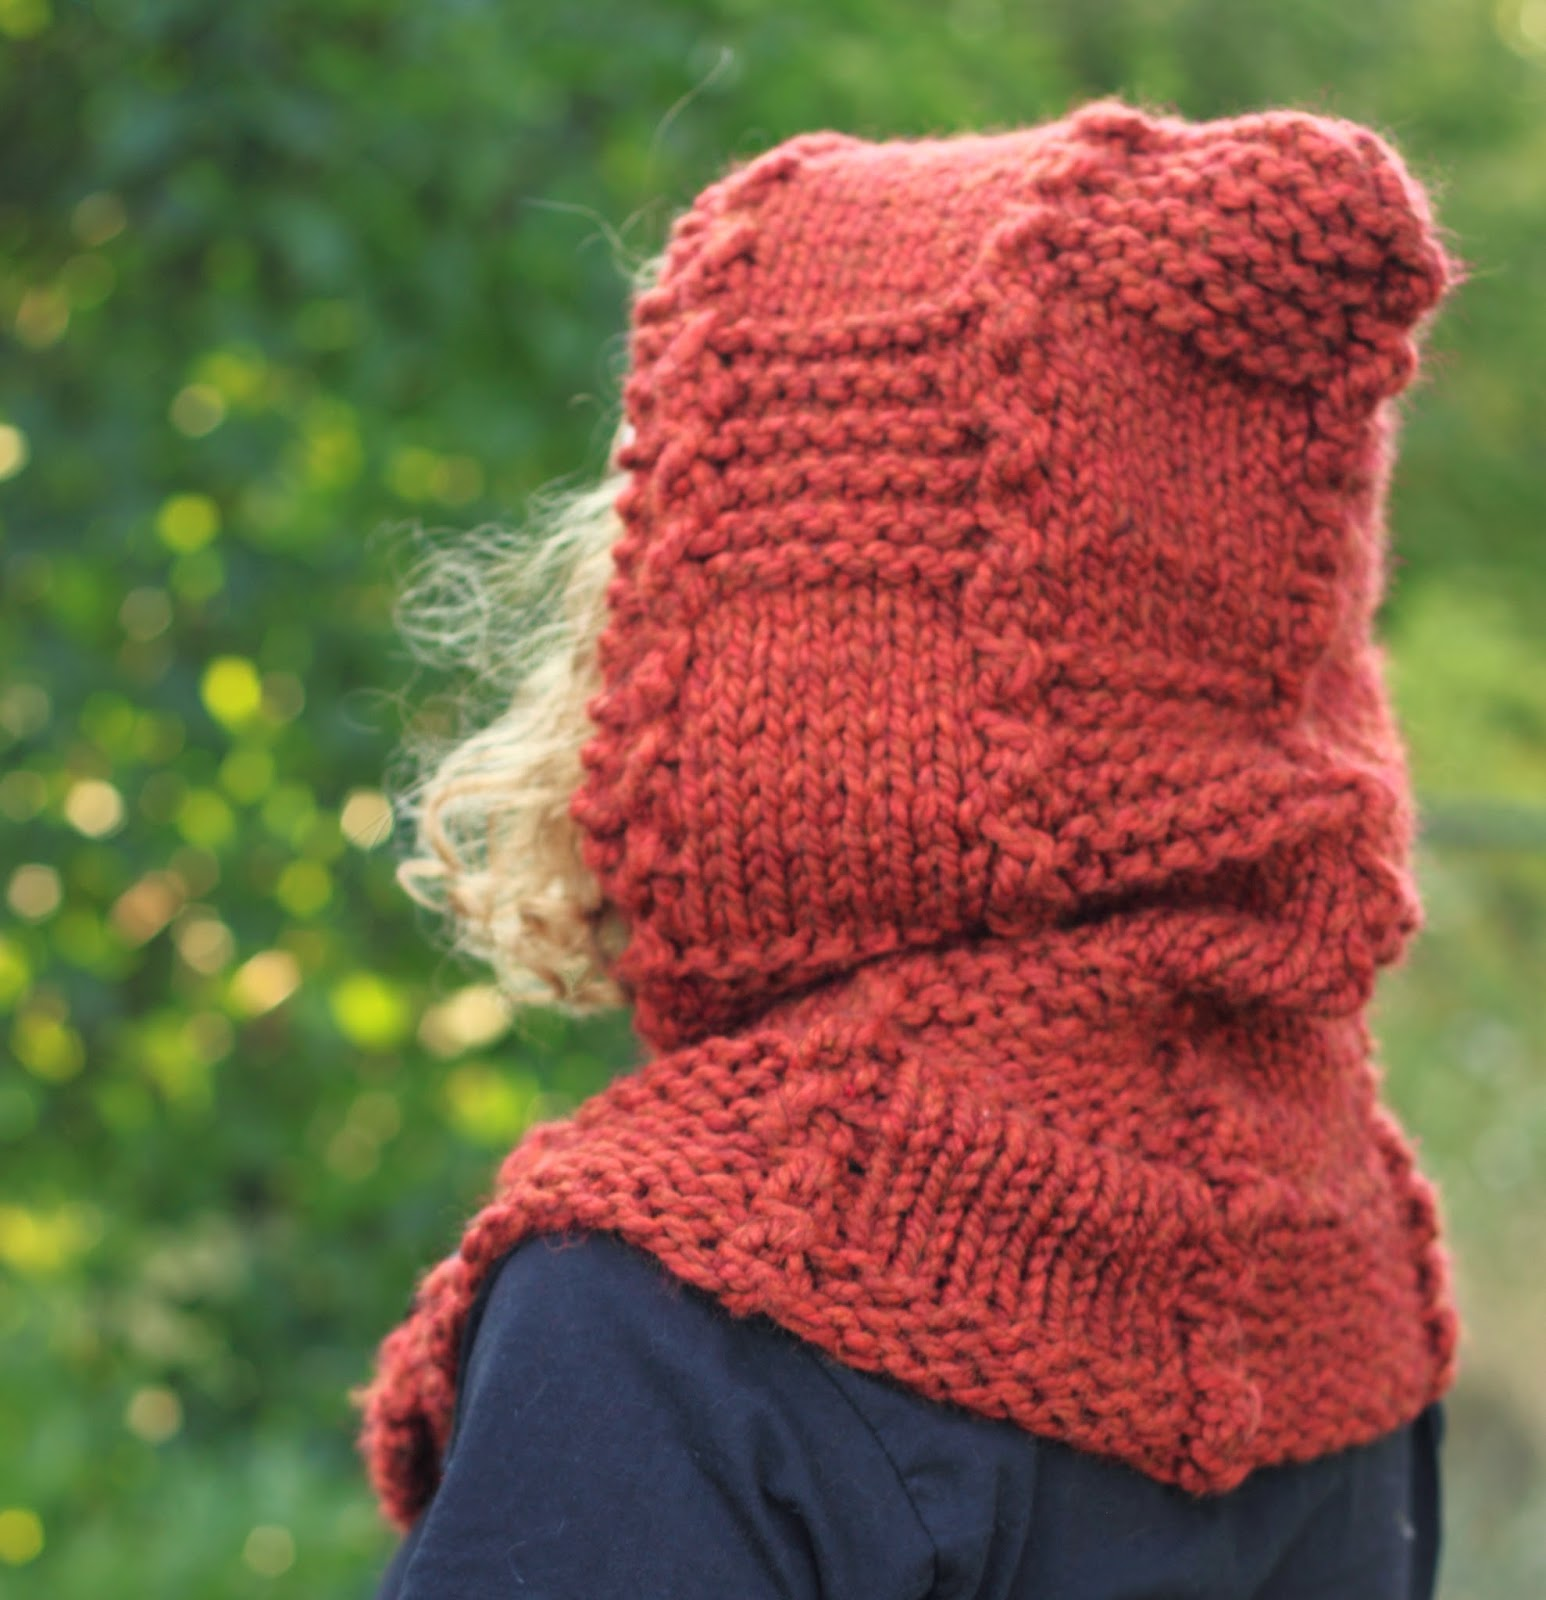 Hooded Cowl Knitting Pattern Free : Through the knitting lens fall woods quilt squares